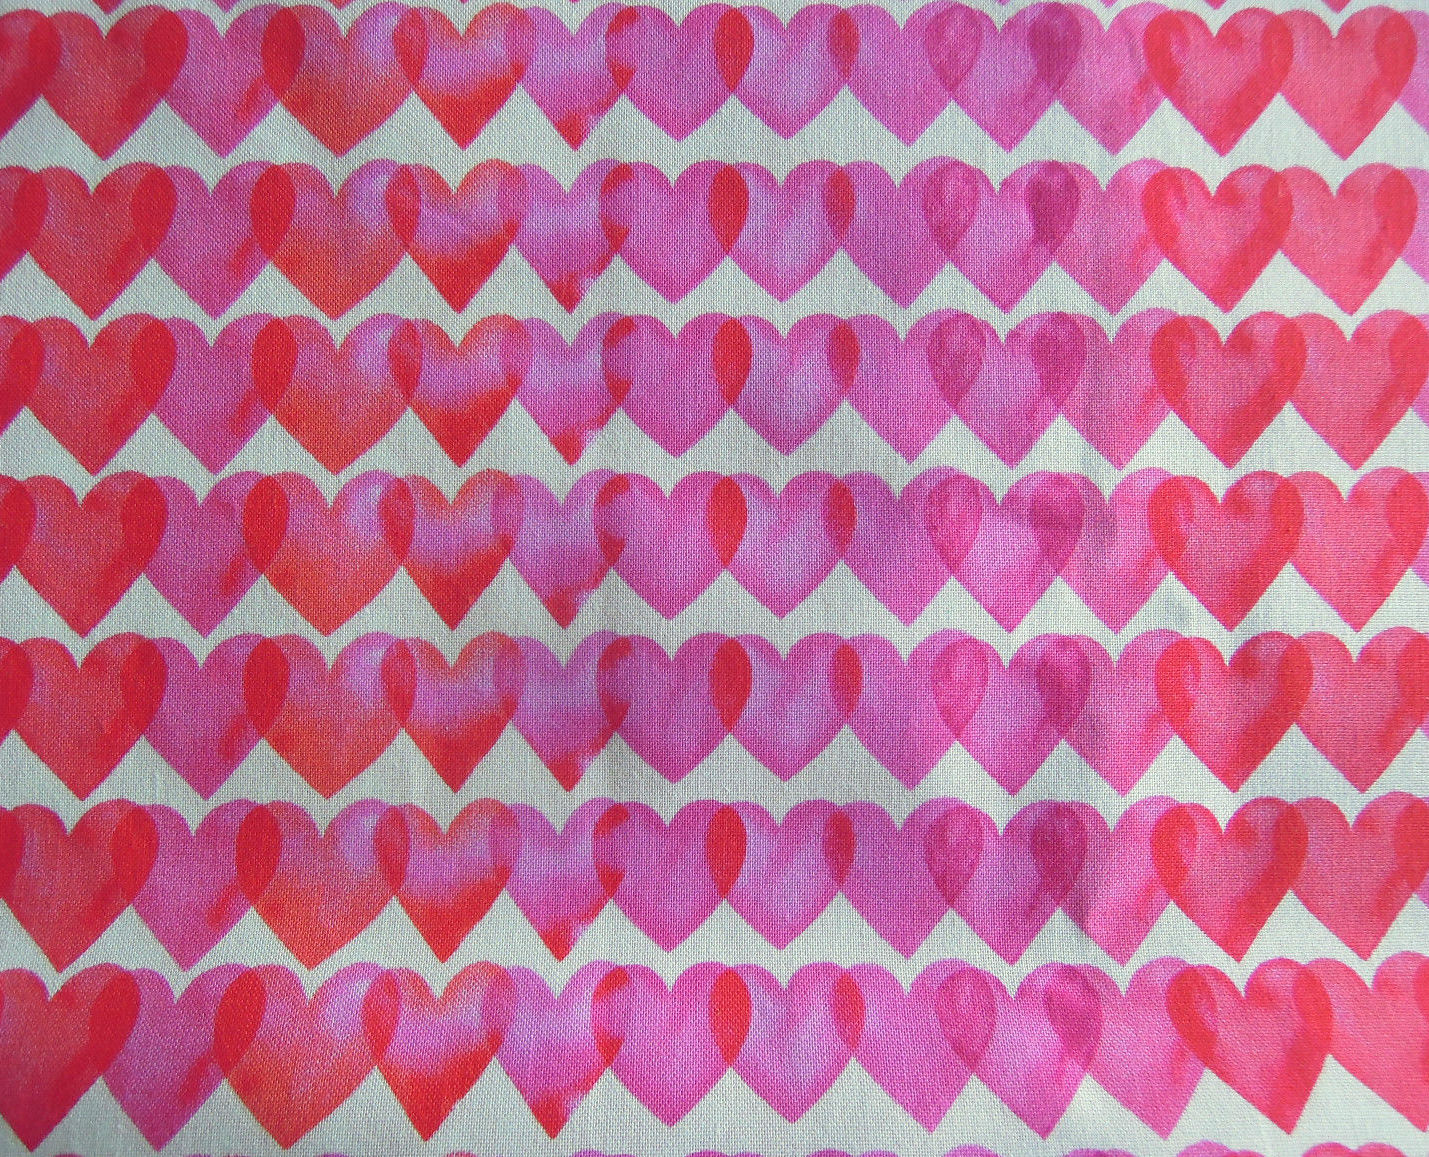 only $6.99! 2 YDS heart Fabric (click!)